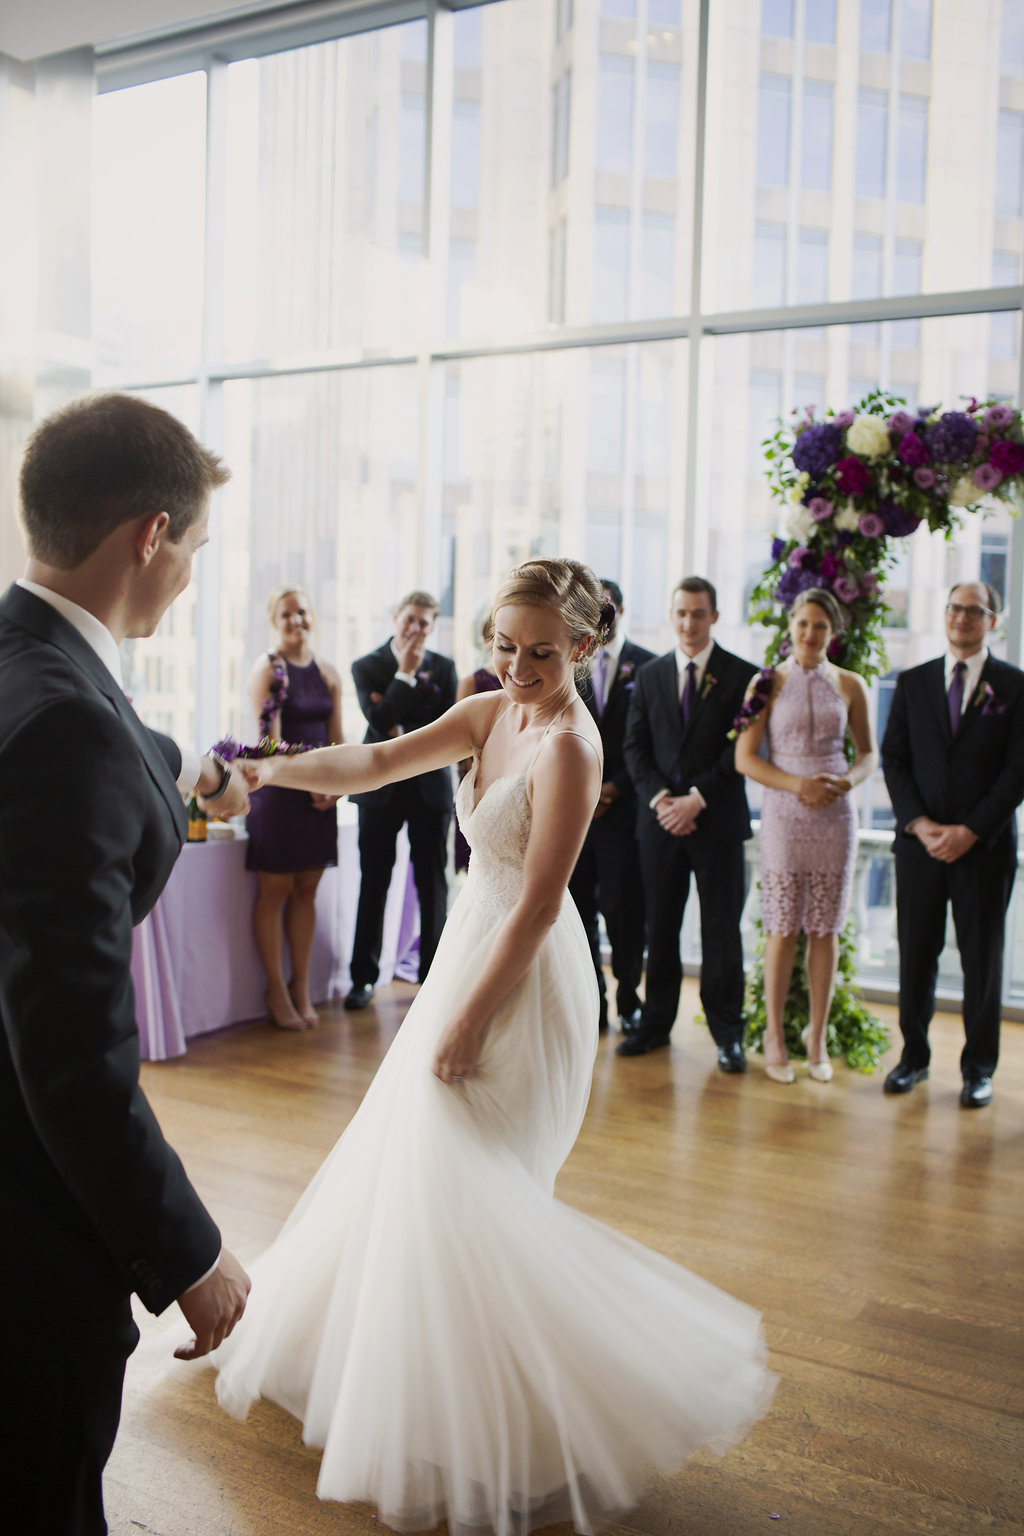 Bride is spinning to music by Huskey AMA during her wedding reception coordinated by Magnificent Moments Weddings